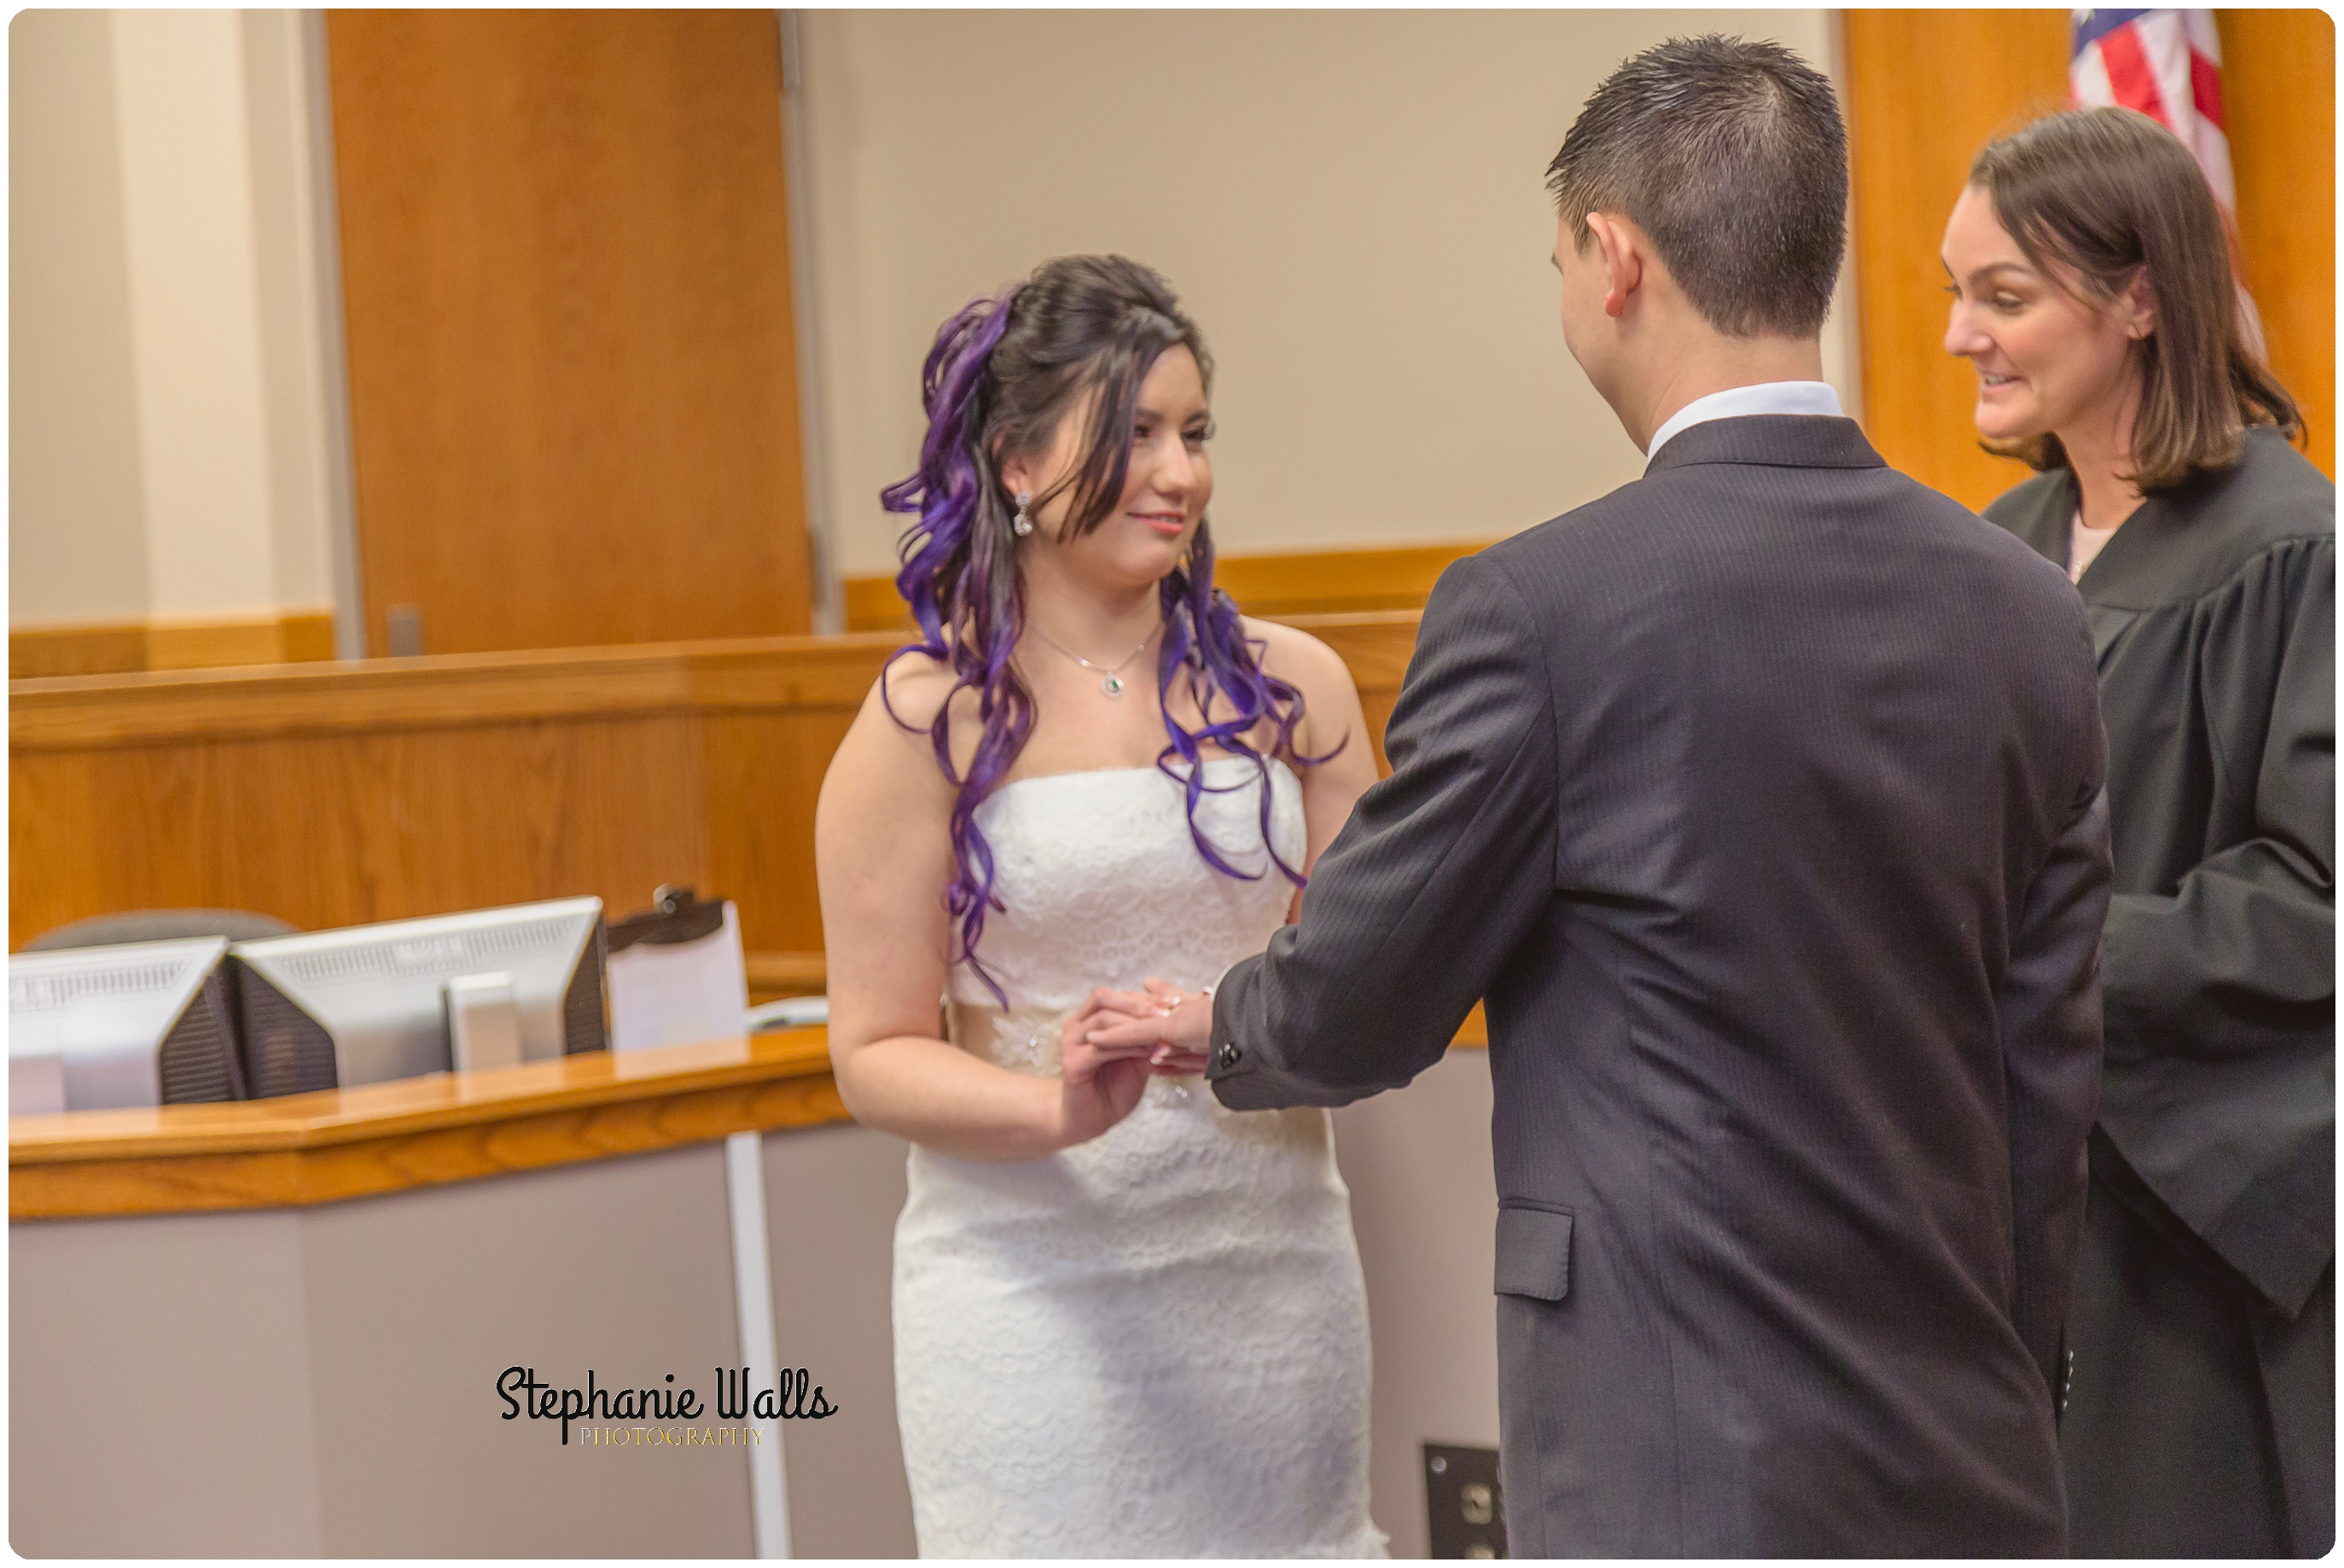 Chan Wedding 055 1 LAUGHTER AND LACE | BOTHELL COURTHOUSE WEDDING BOTHELL WA